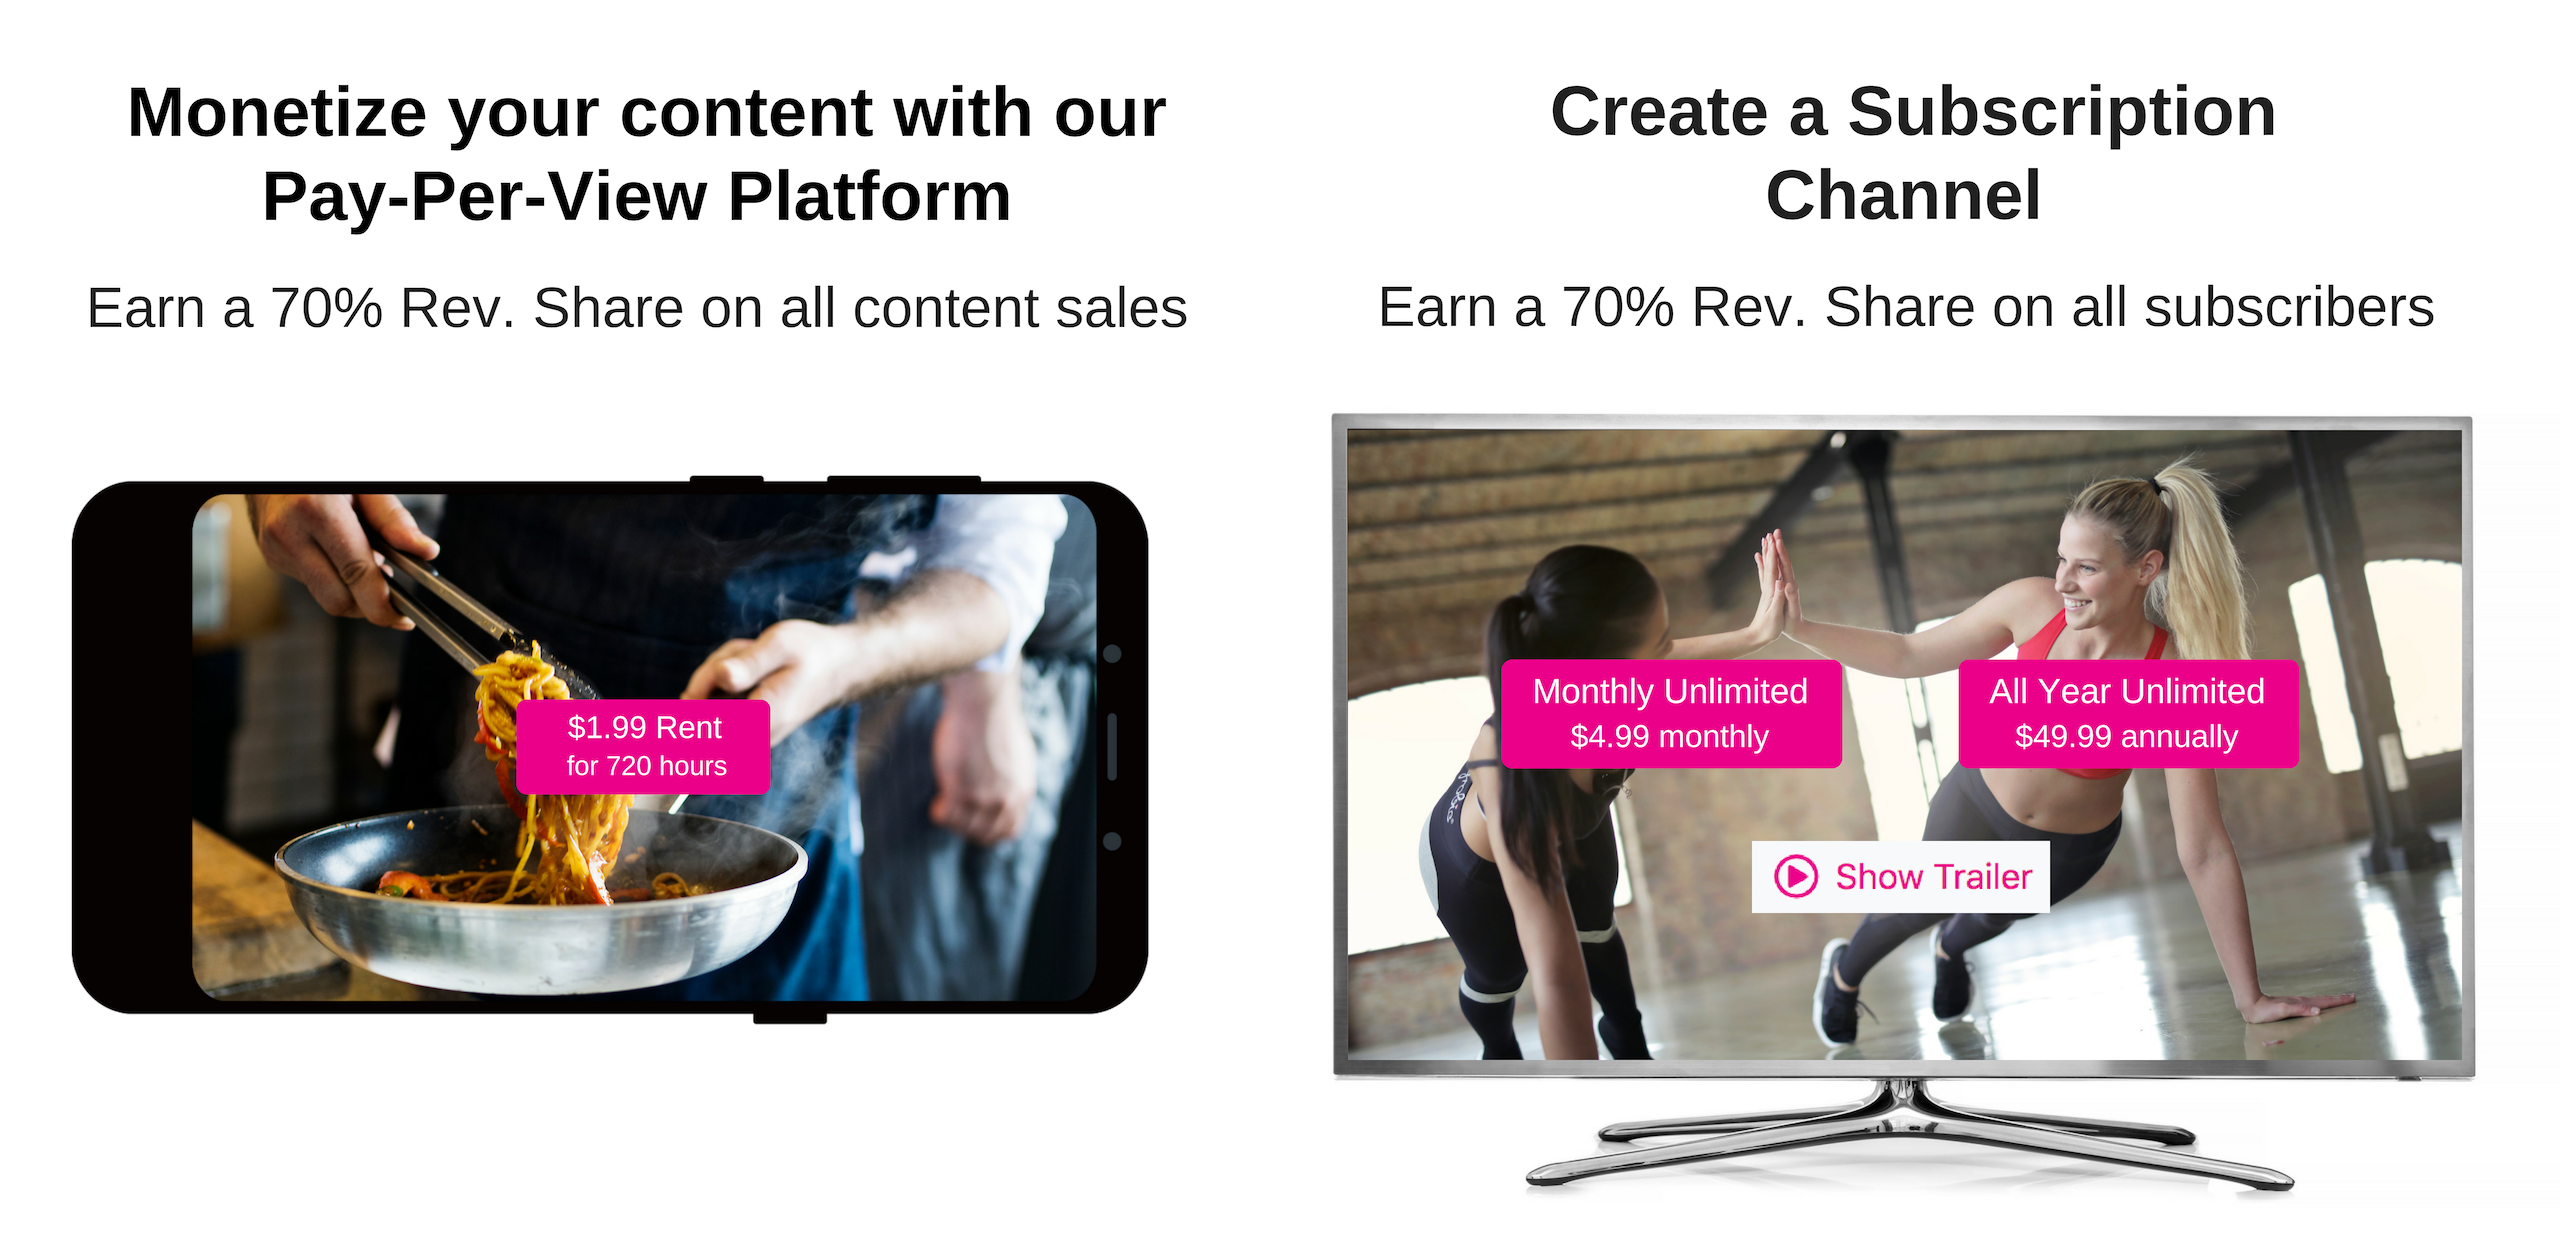 Get A Branded Channel and Distribution in Apple TV, ROKU, Amazon Fire, and others.